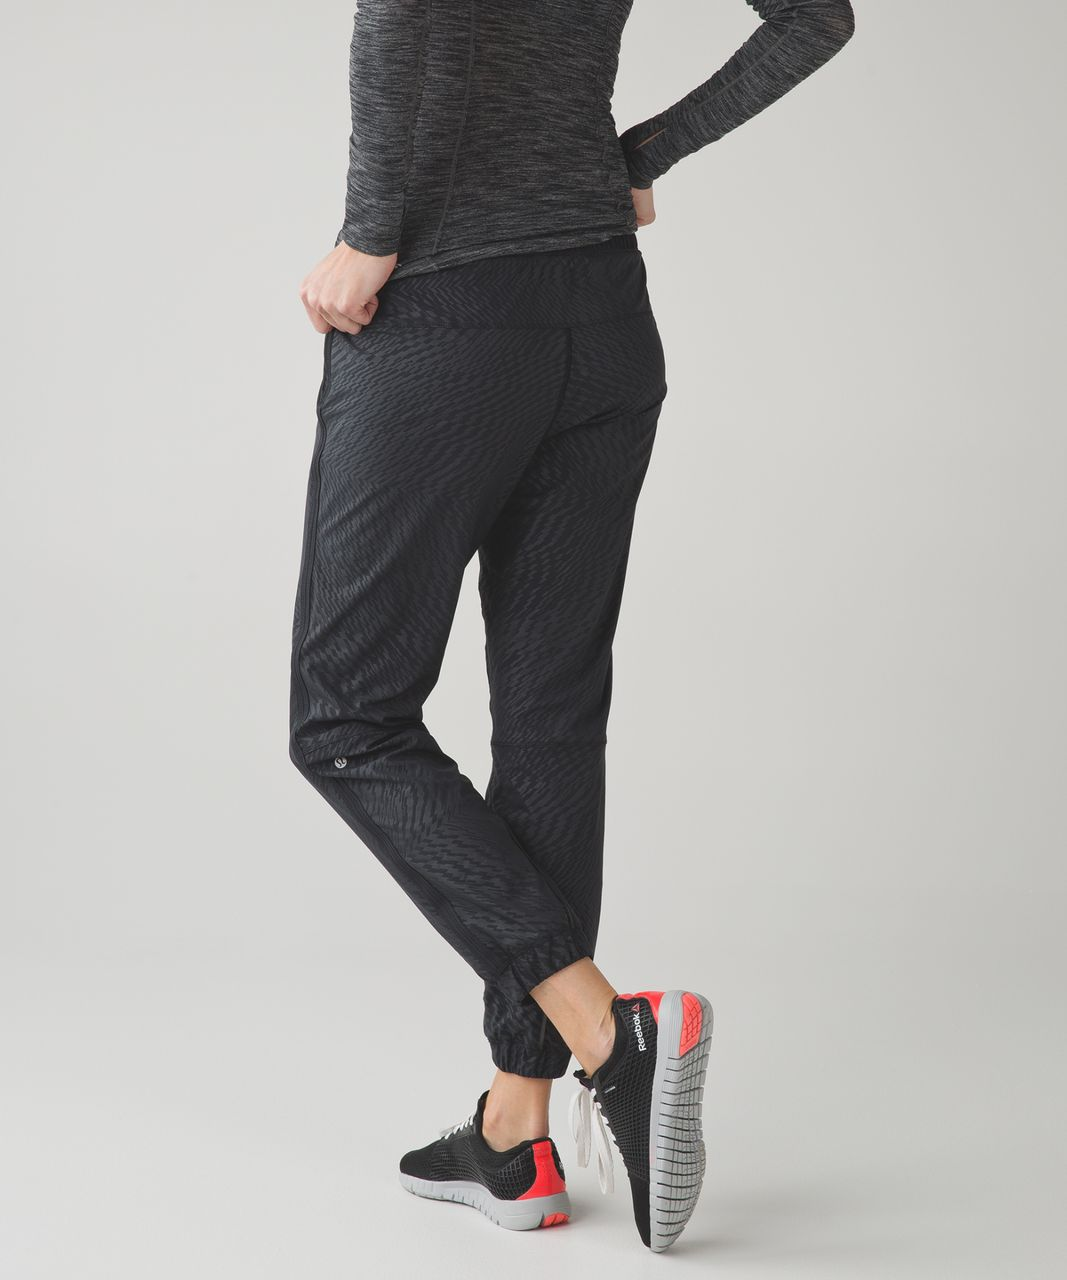 Lululemon Track To Reality Pant III - Shifted Horizon Embossed Black / Black